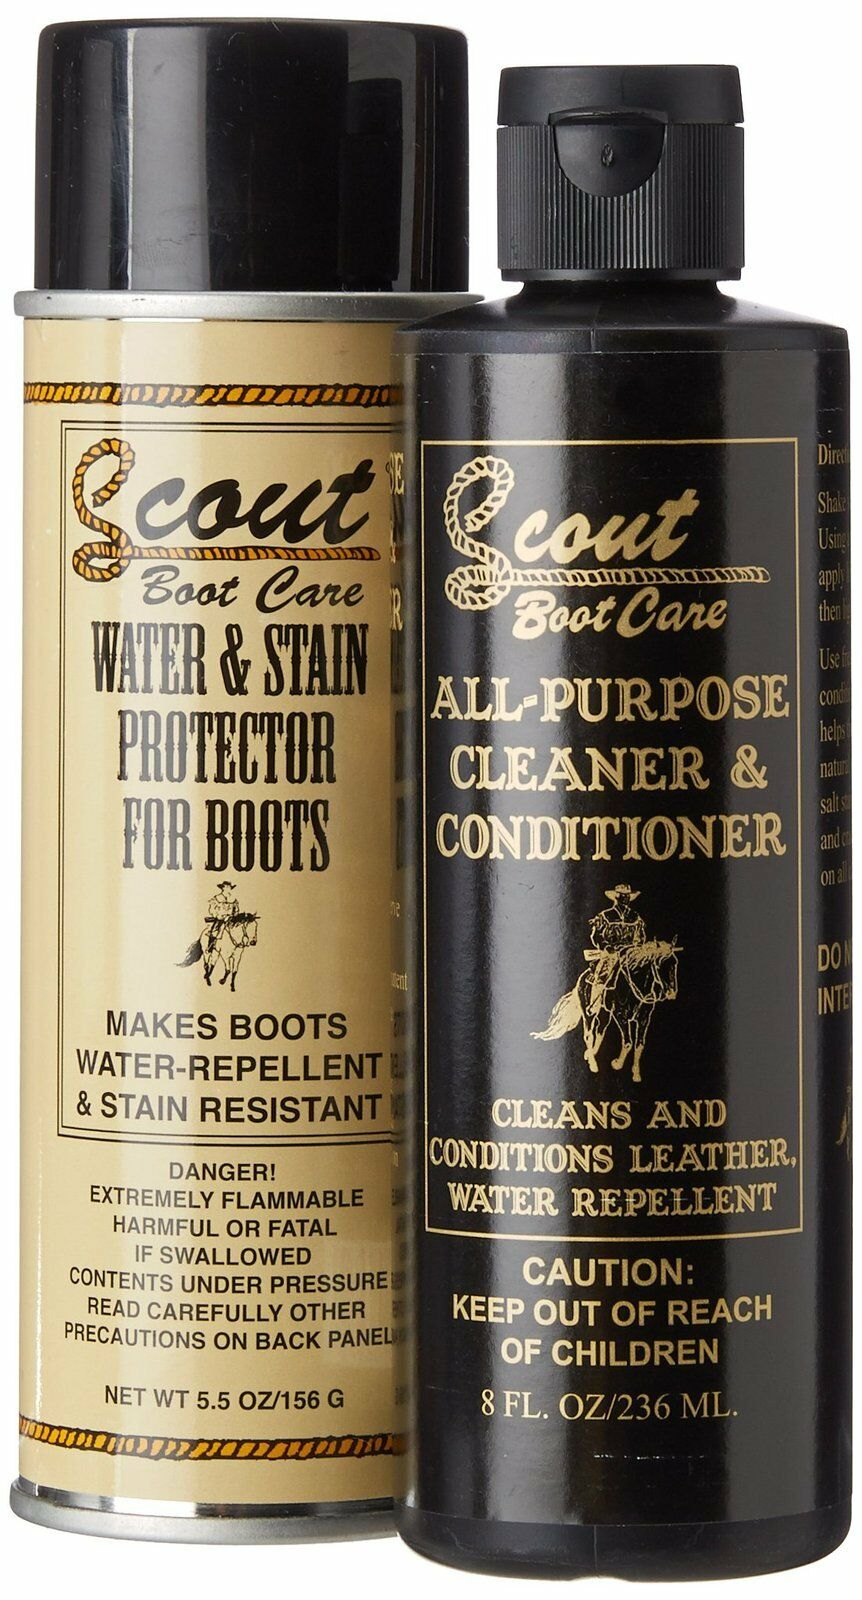 All-Purpose Cleaner and Conditioner + Water and Stain Protector for Boots -Scout